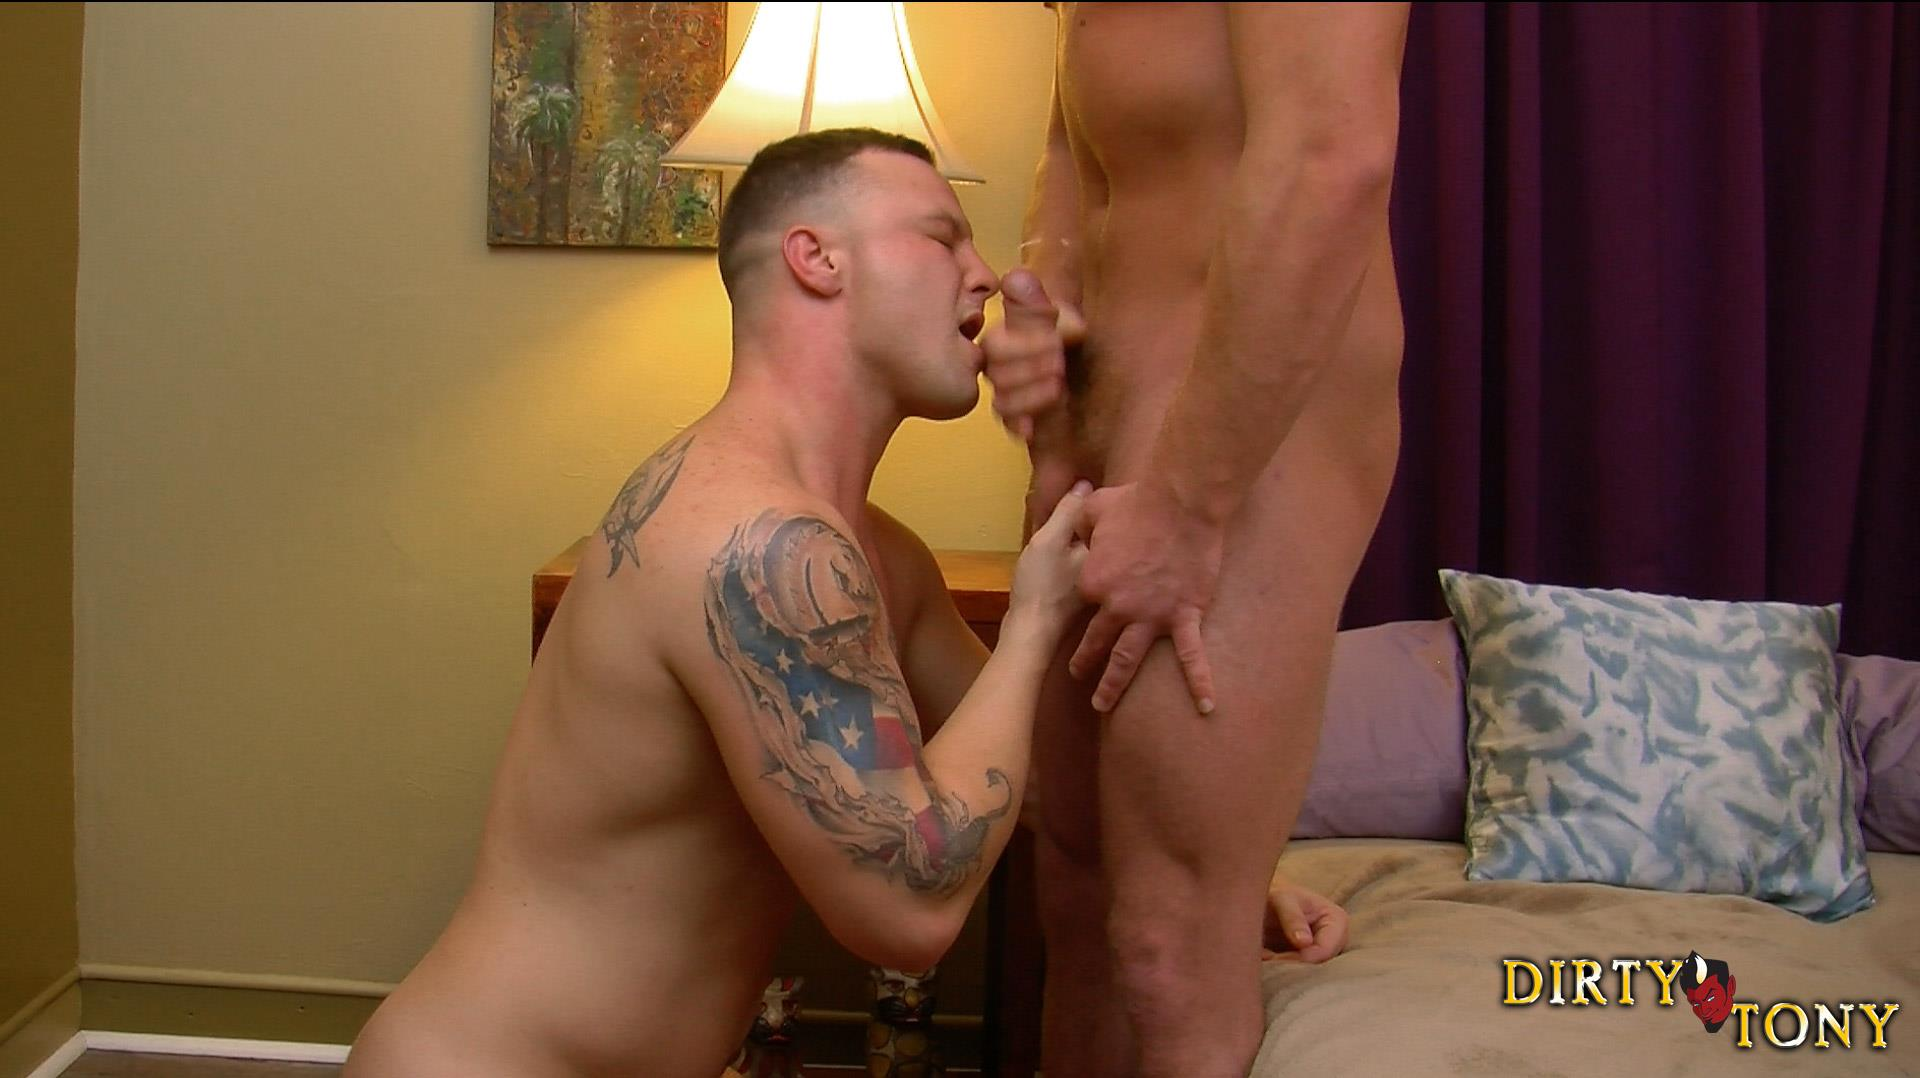 Dirty Tony Logan Blake and Connor Maguire Marine Getting Fucked In the Ass Amateur Gay Porn 15 Former US Marine Takes A Big Uncut Cock Up The Ass